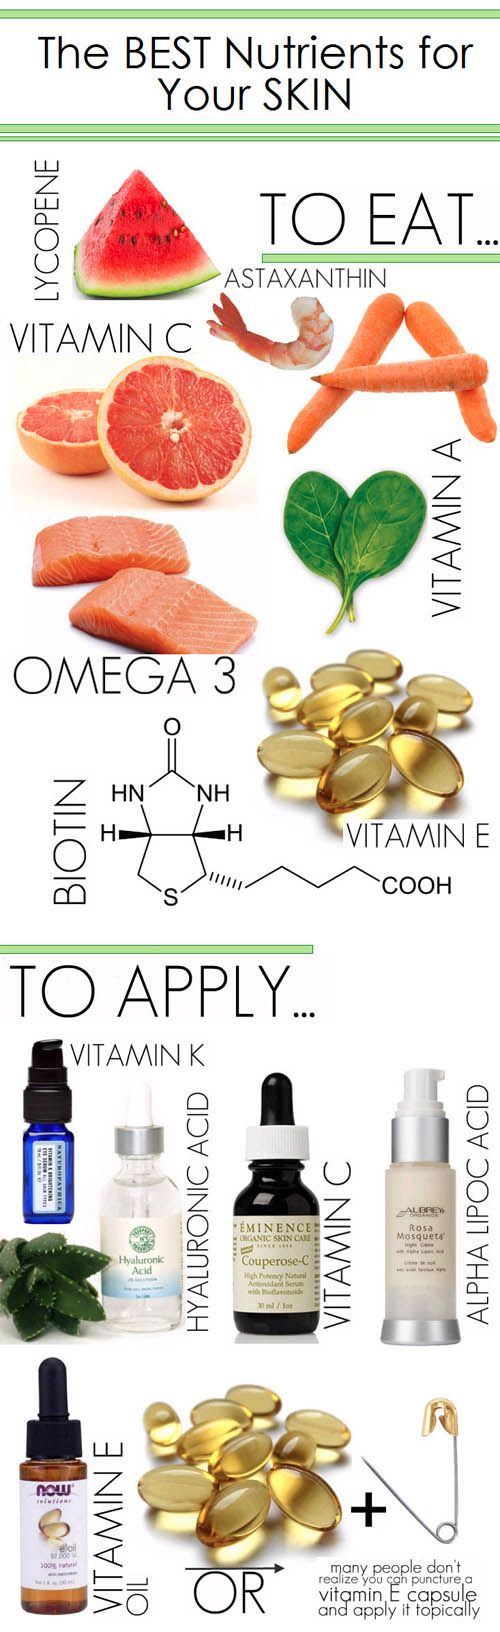 10 Best Nutrients for Skin Health.  ================================  Be sure to check out Sexy Girls beautiful, cute, sweet, lovely, sweet girls, pretty, bed girl, girl pic with guitarl and sexy photo here...http://bit.ly/15LQceO